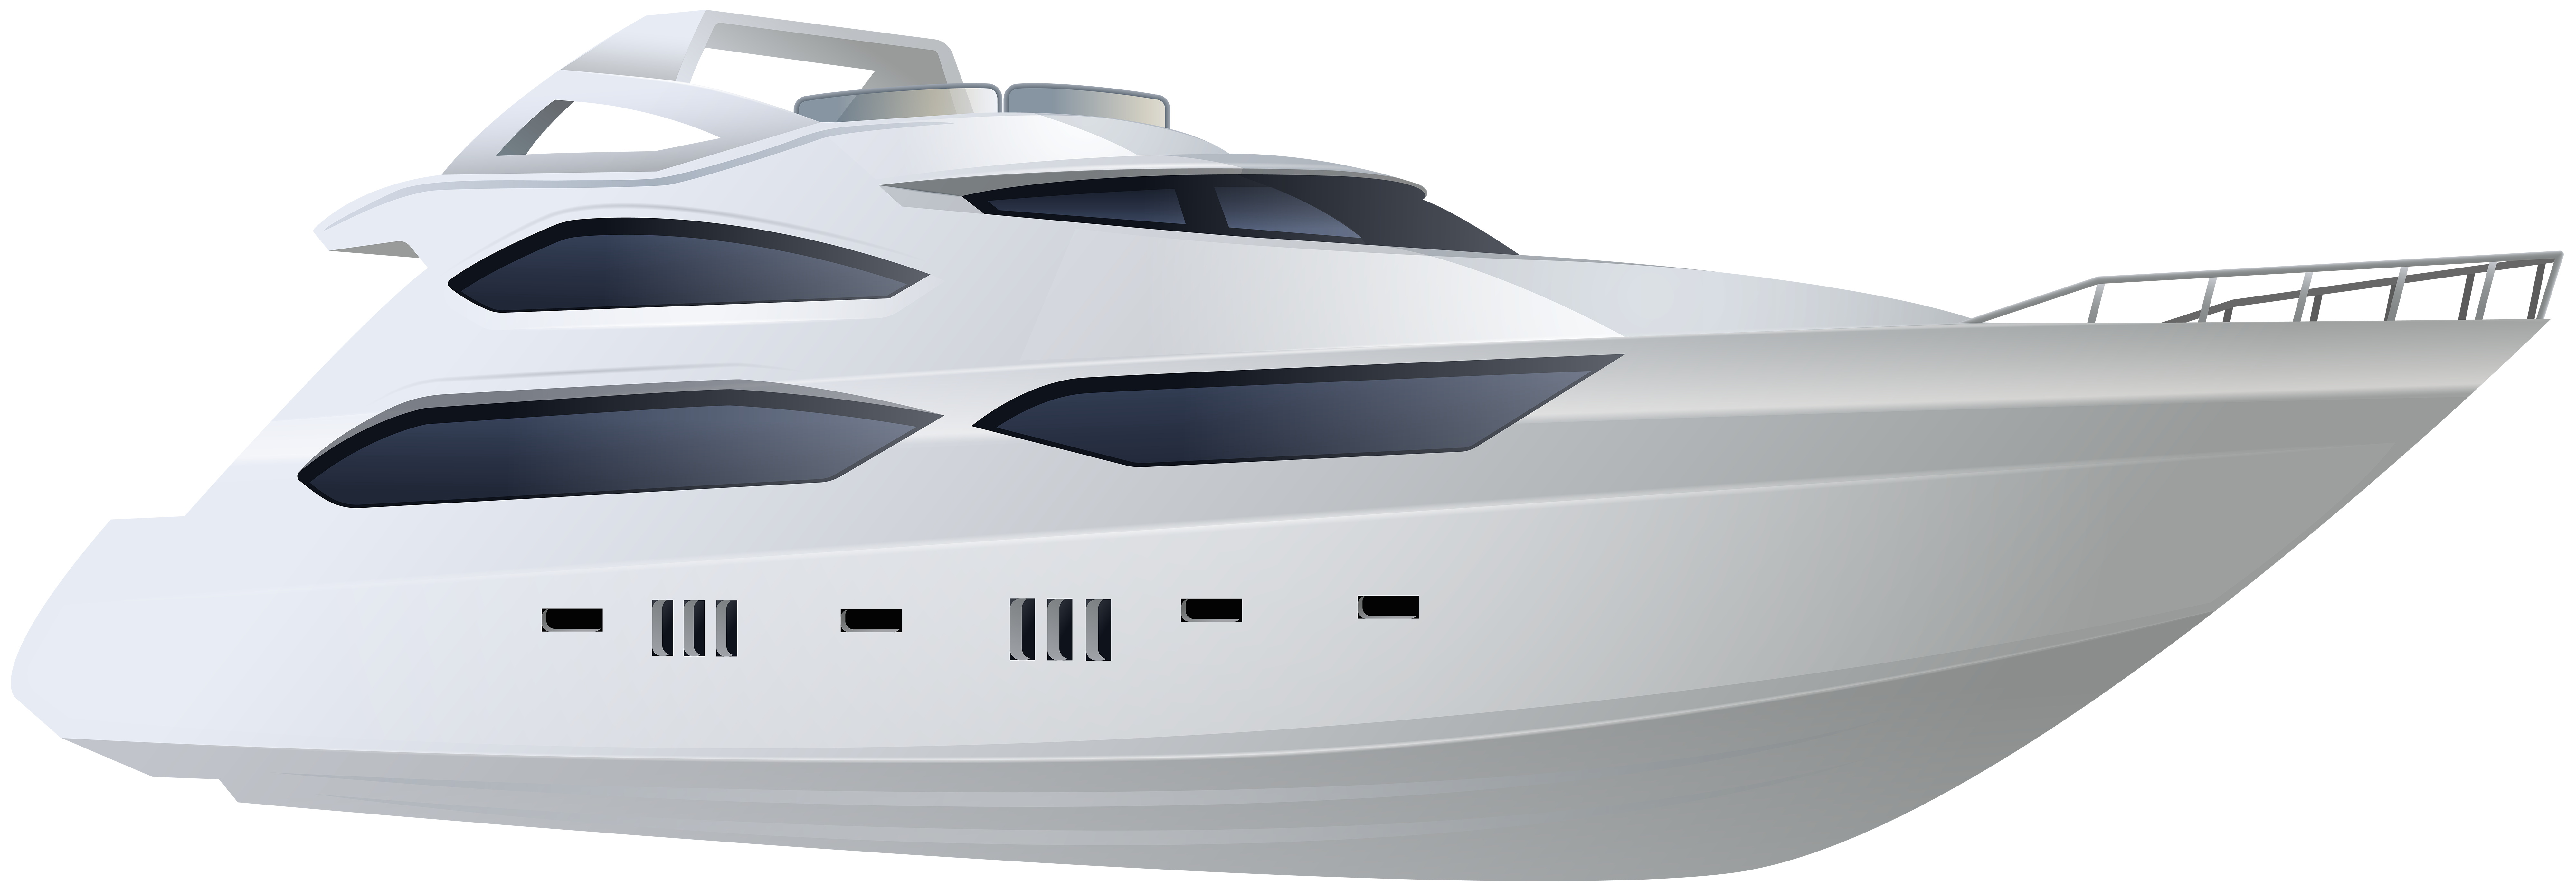 Clip art image gallery. Yacht png water transportation clipart freeuse library